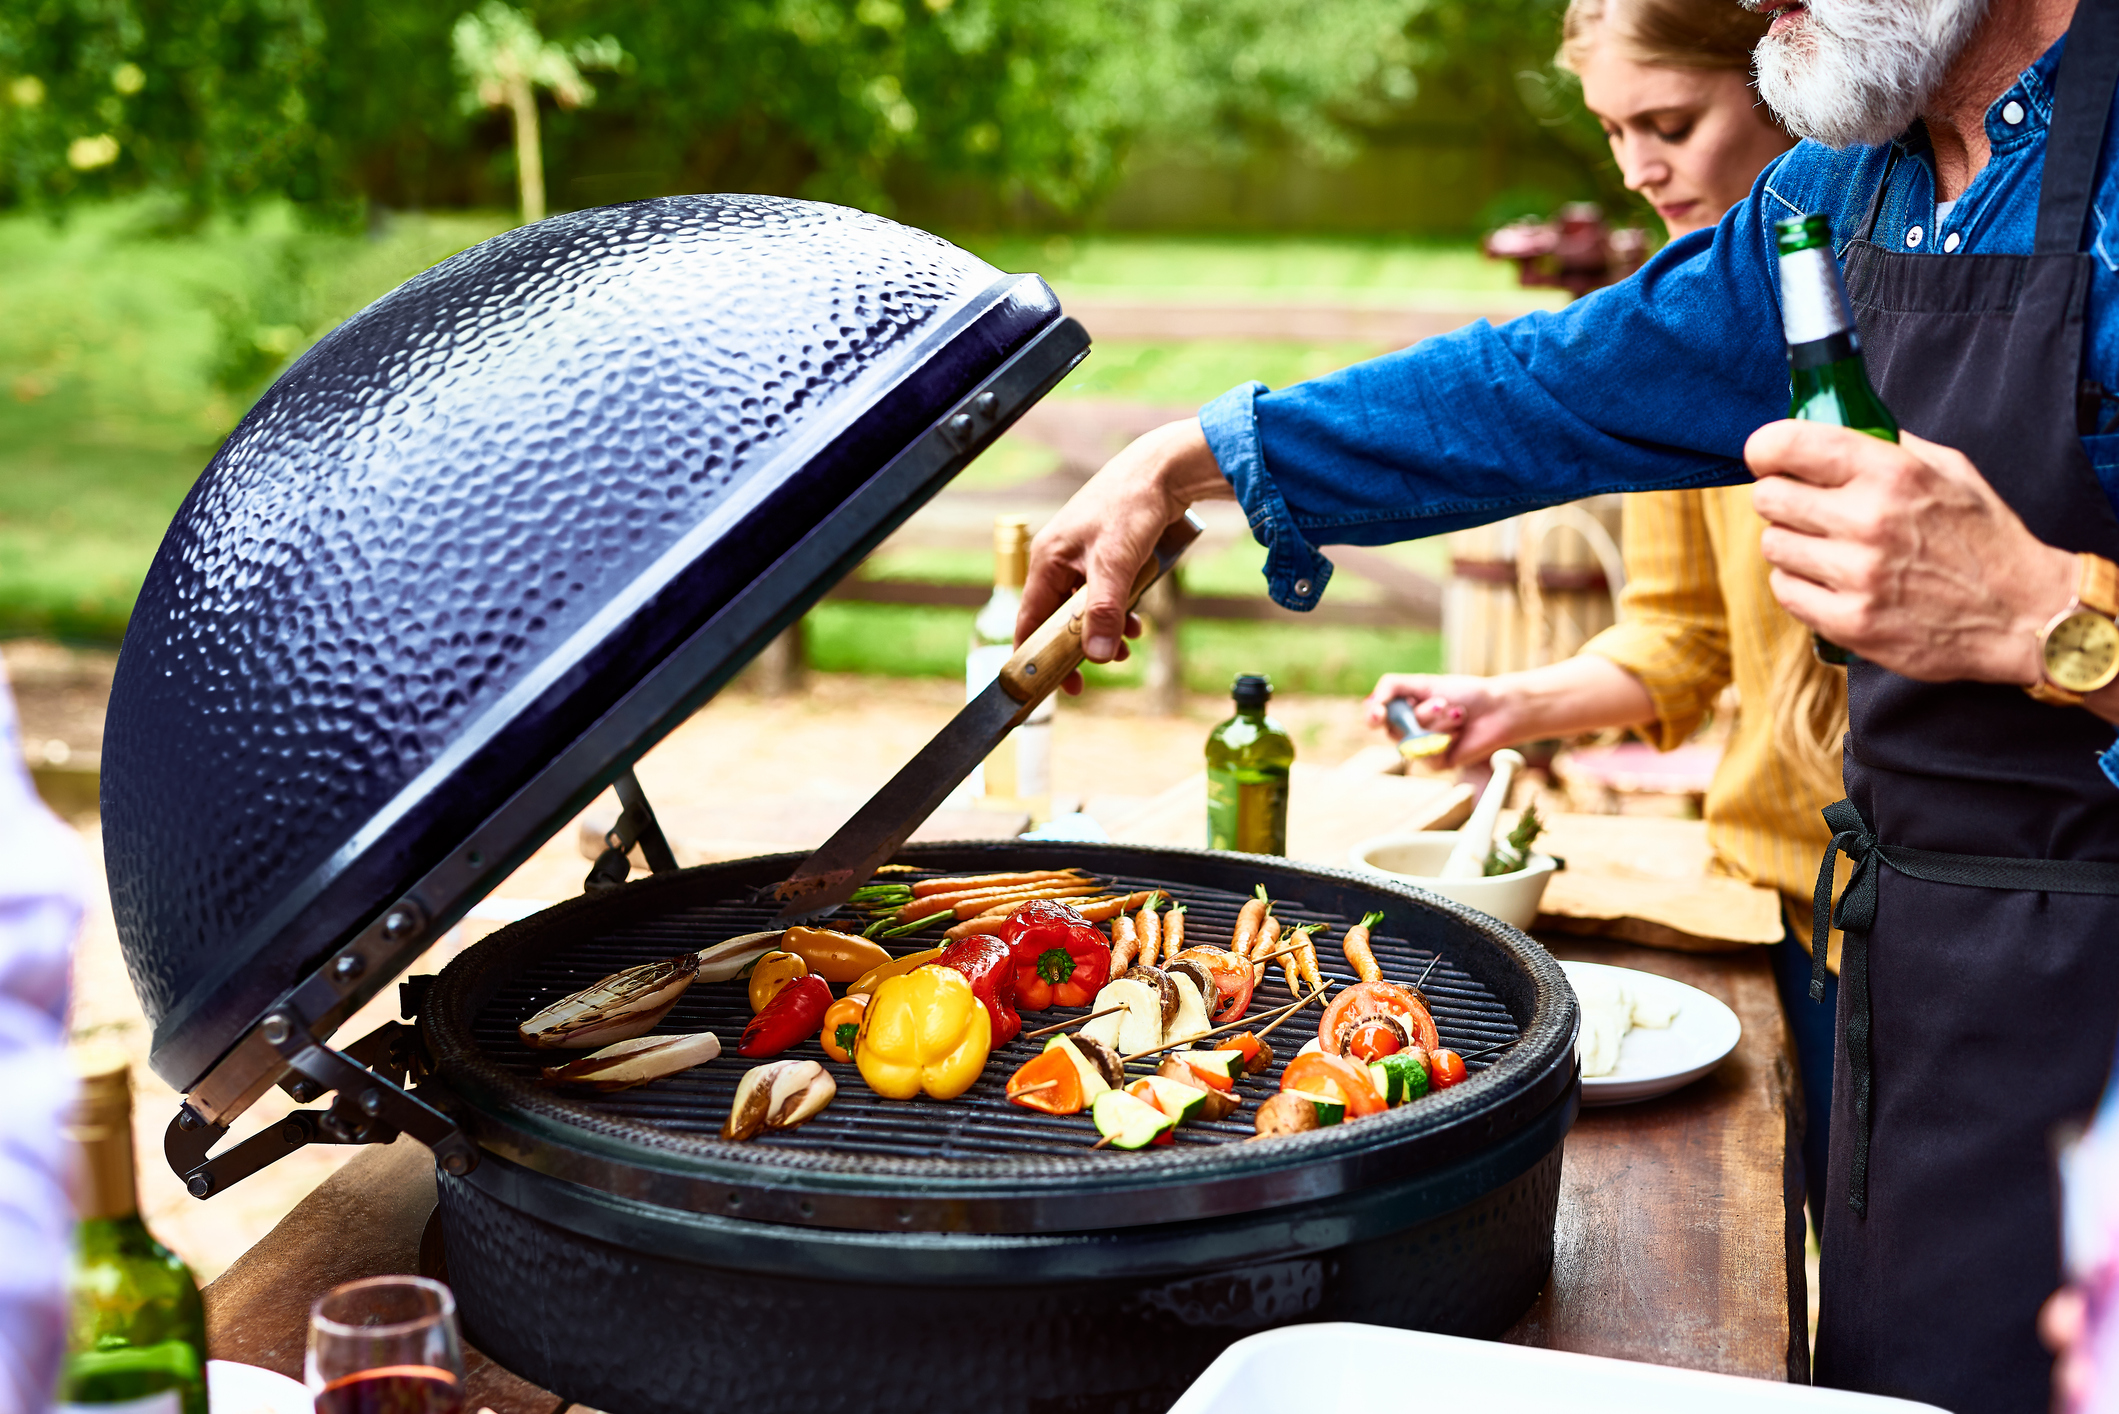 Targeted Marketing For Your American Summer Cookout Campaign